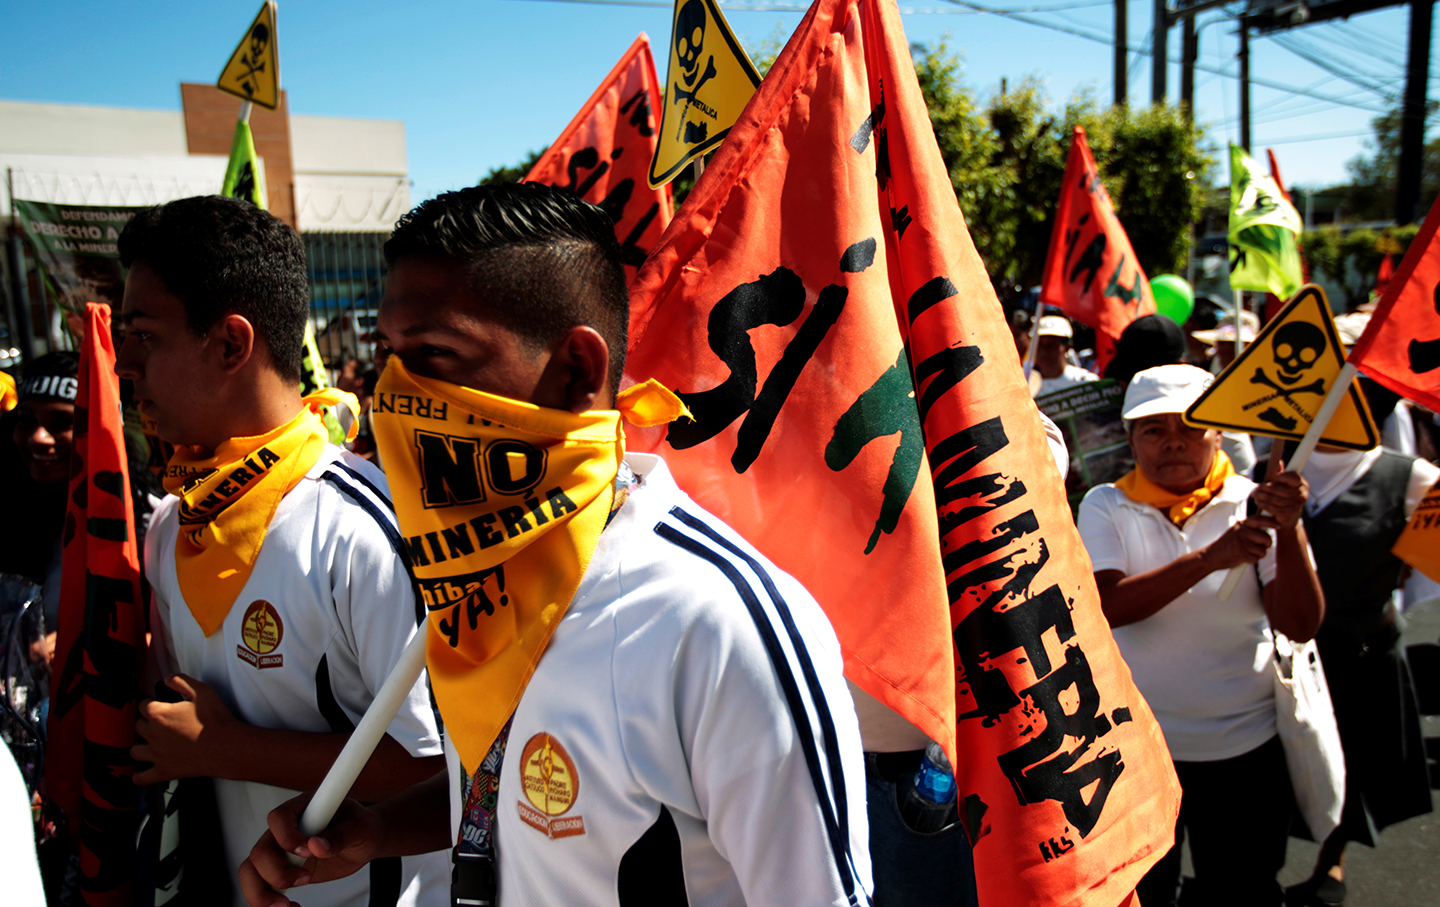 Mining protests in El Salvador